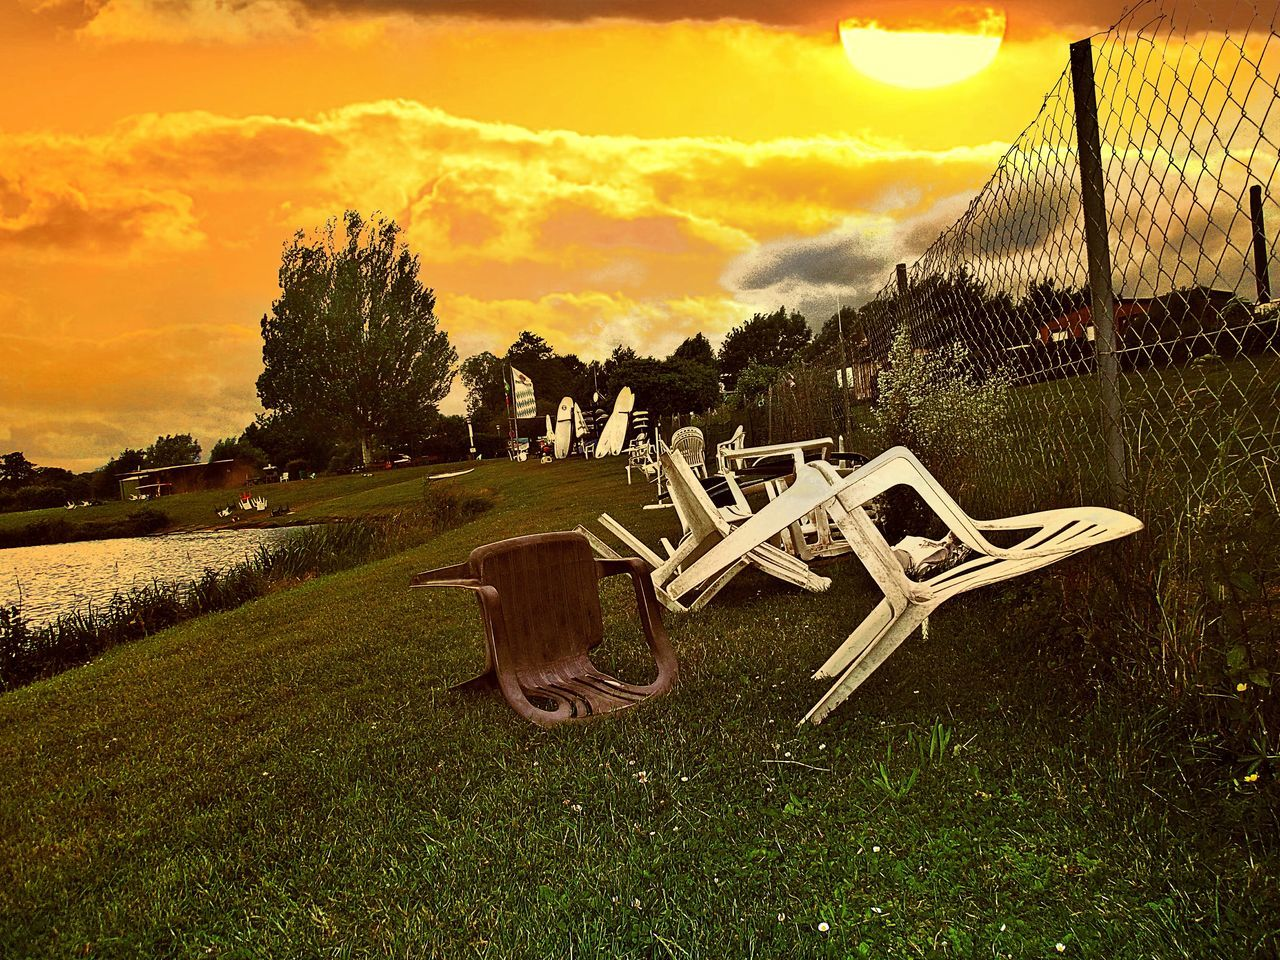 End Of A Stormy Day Chairs Lying Arround Sunset Porn Lakeshore Lakeside Surfclub Green Grass And Trees Strong Wind Summer Evening Golden Hour Summer 2017 The Great Outdoors - 2017 EyeEm Awards Lake Kinzigsee Germany🇩🇪